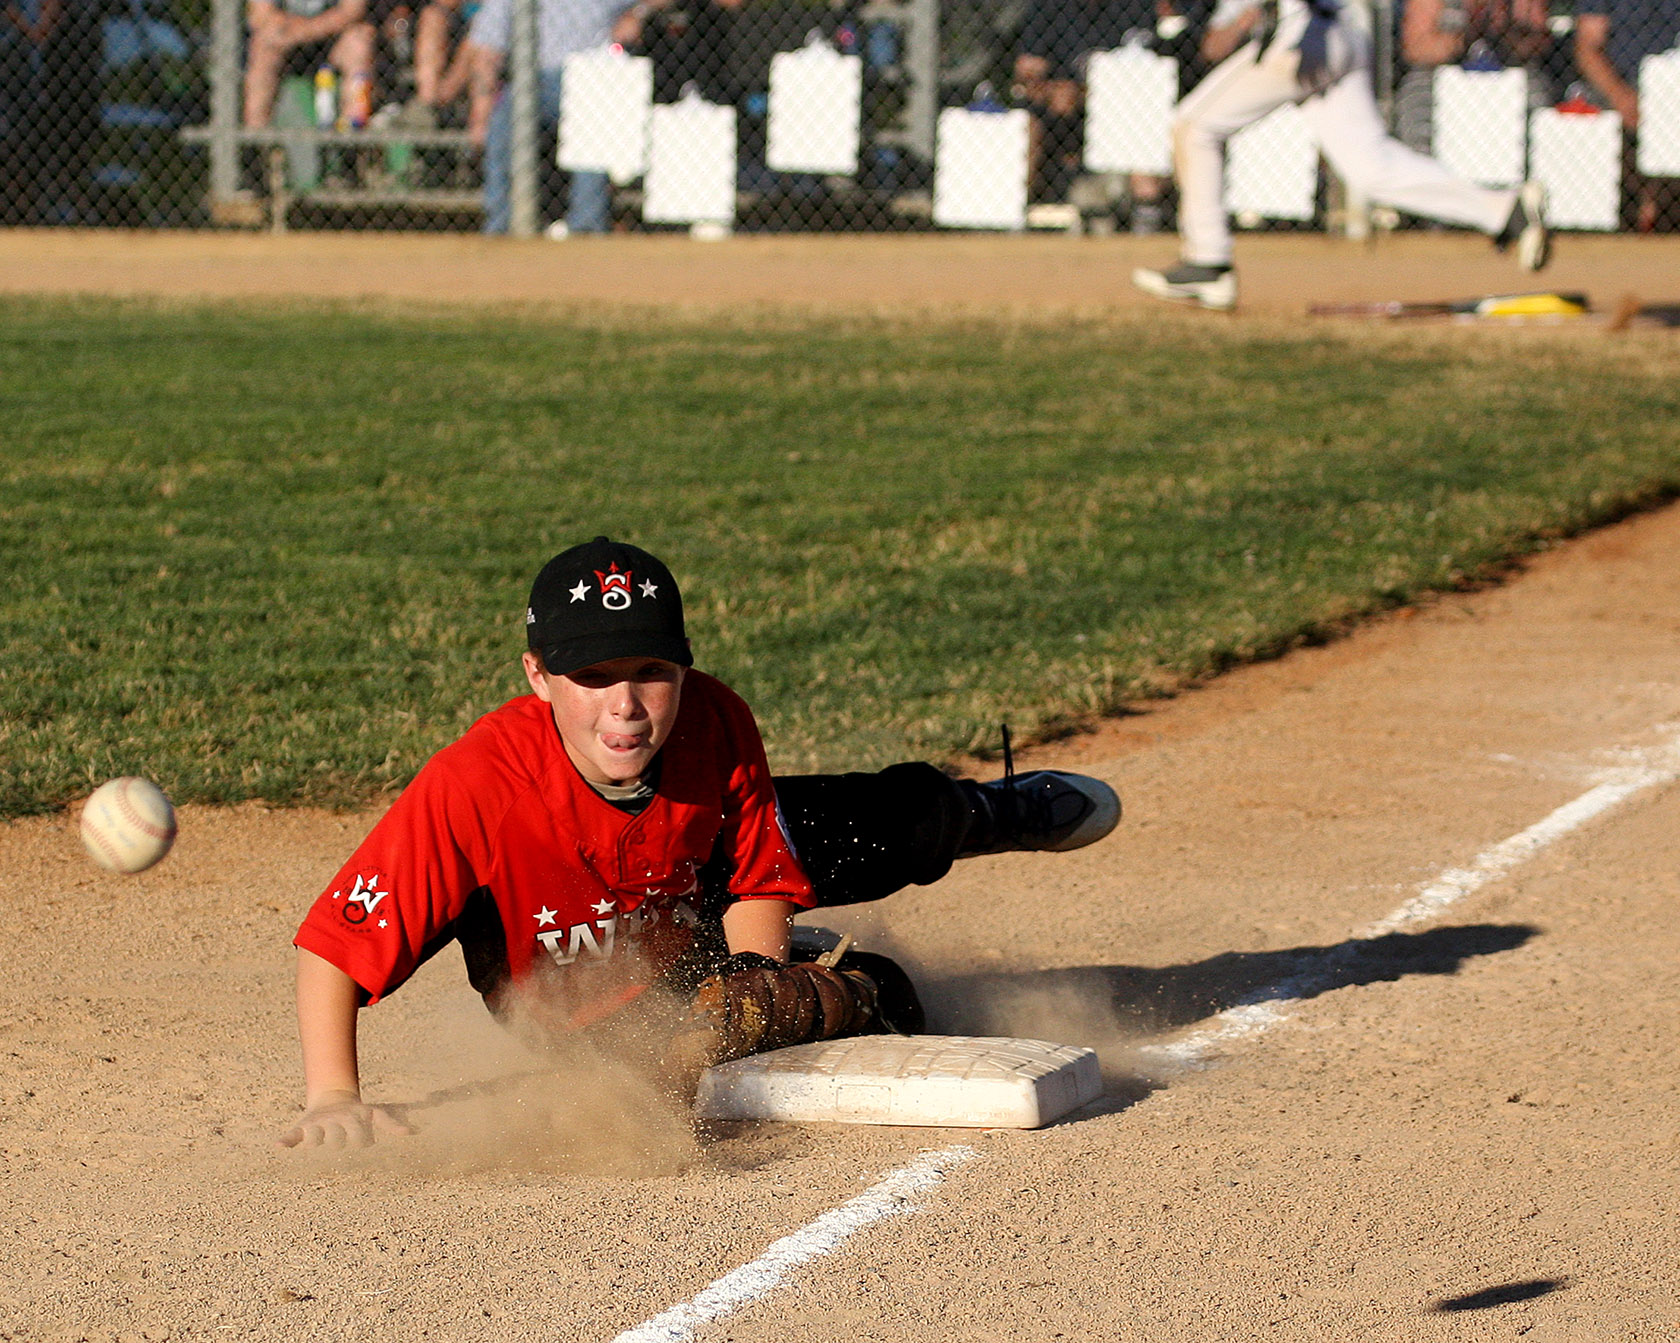 Third baseman Bobby Trigg of West Seattle can only watch as the ball gets by him and heads into left field.